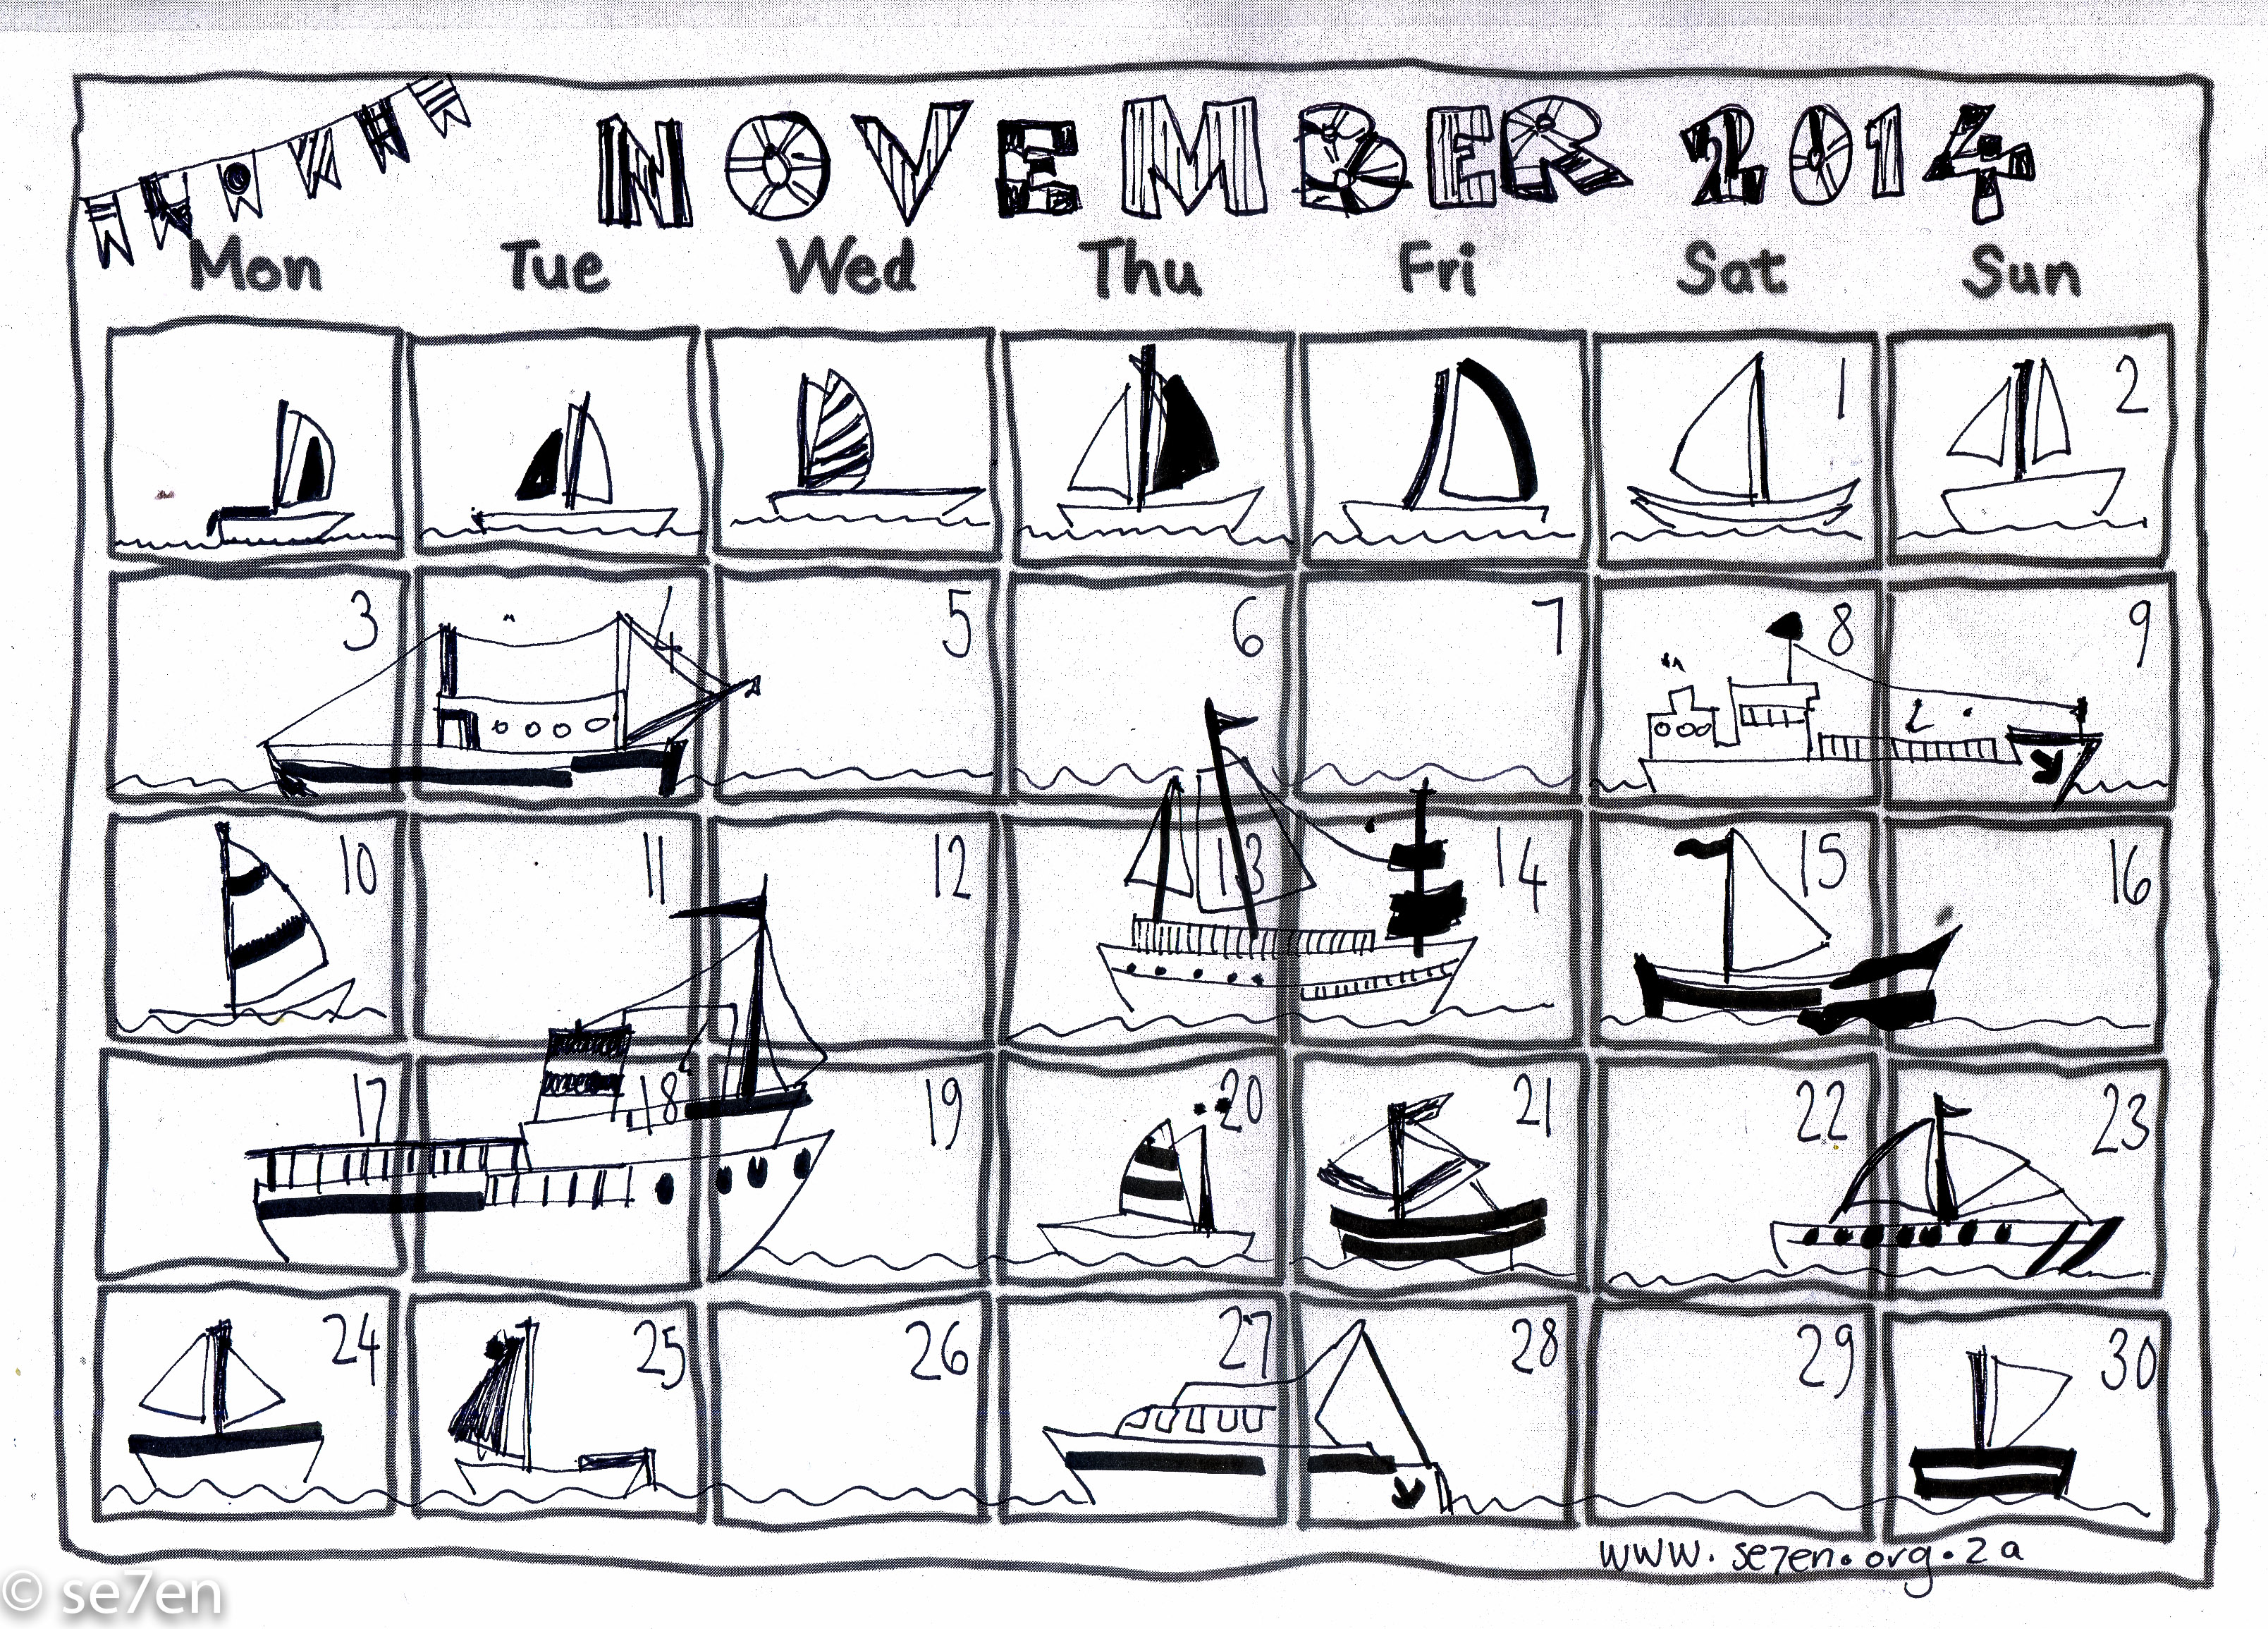 Se7en S November And Your Free Printable Calendar Se7en